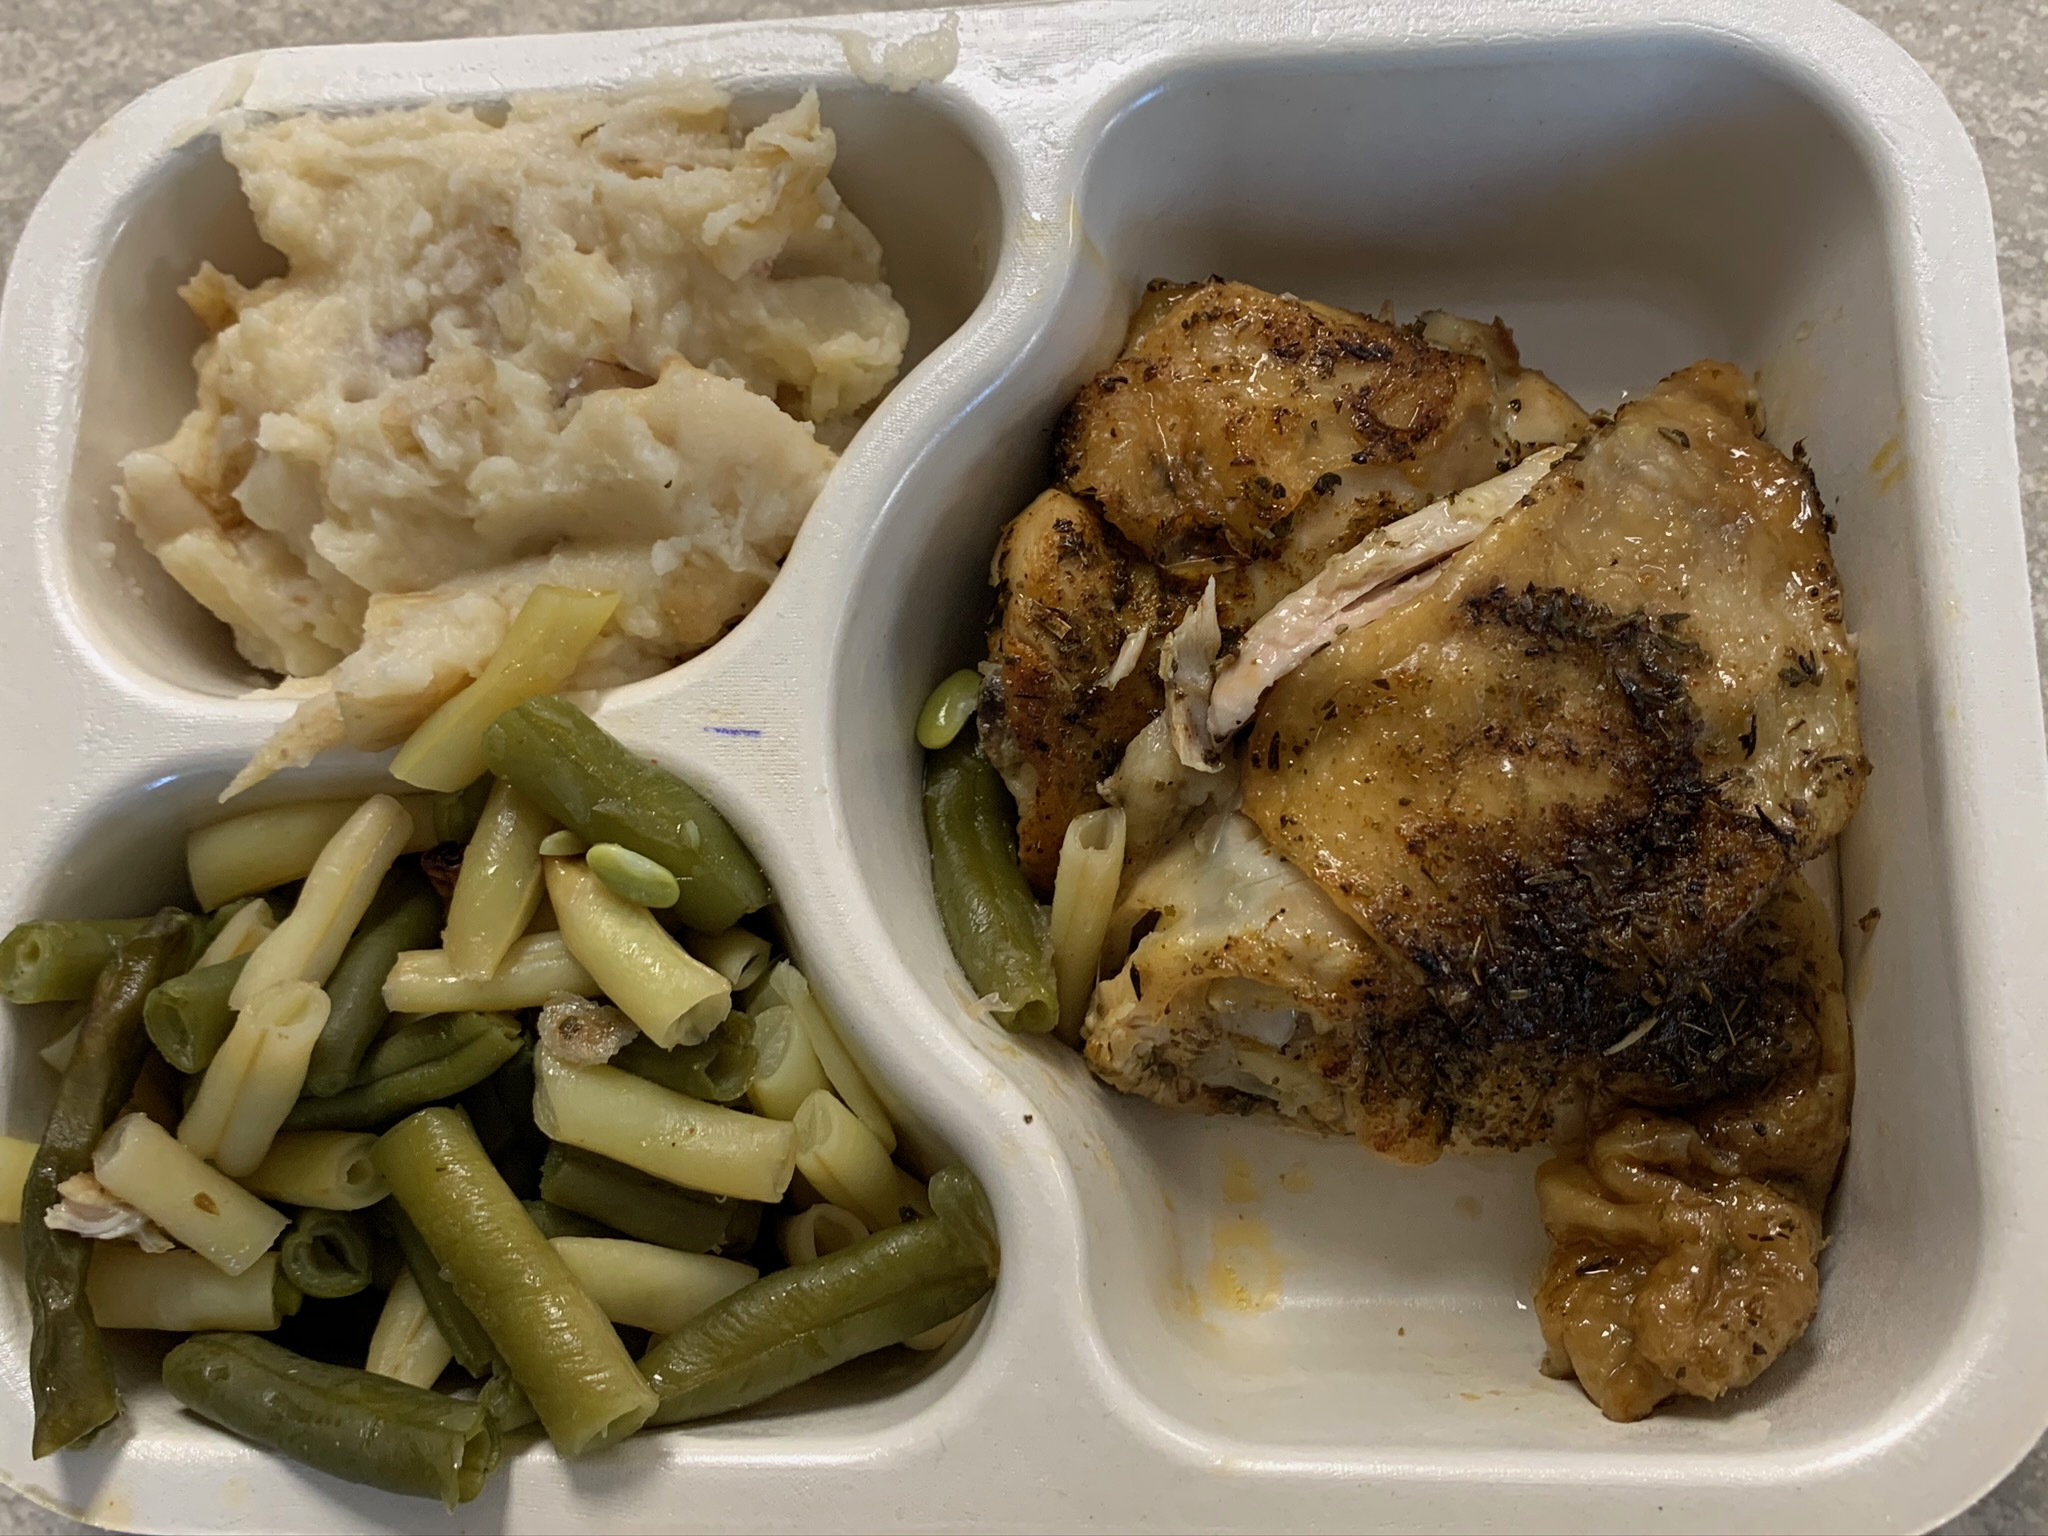 Chicken meal with potatoes and green beans